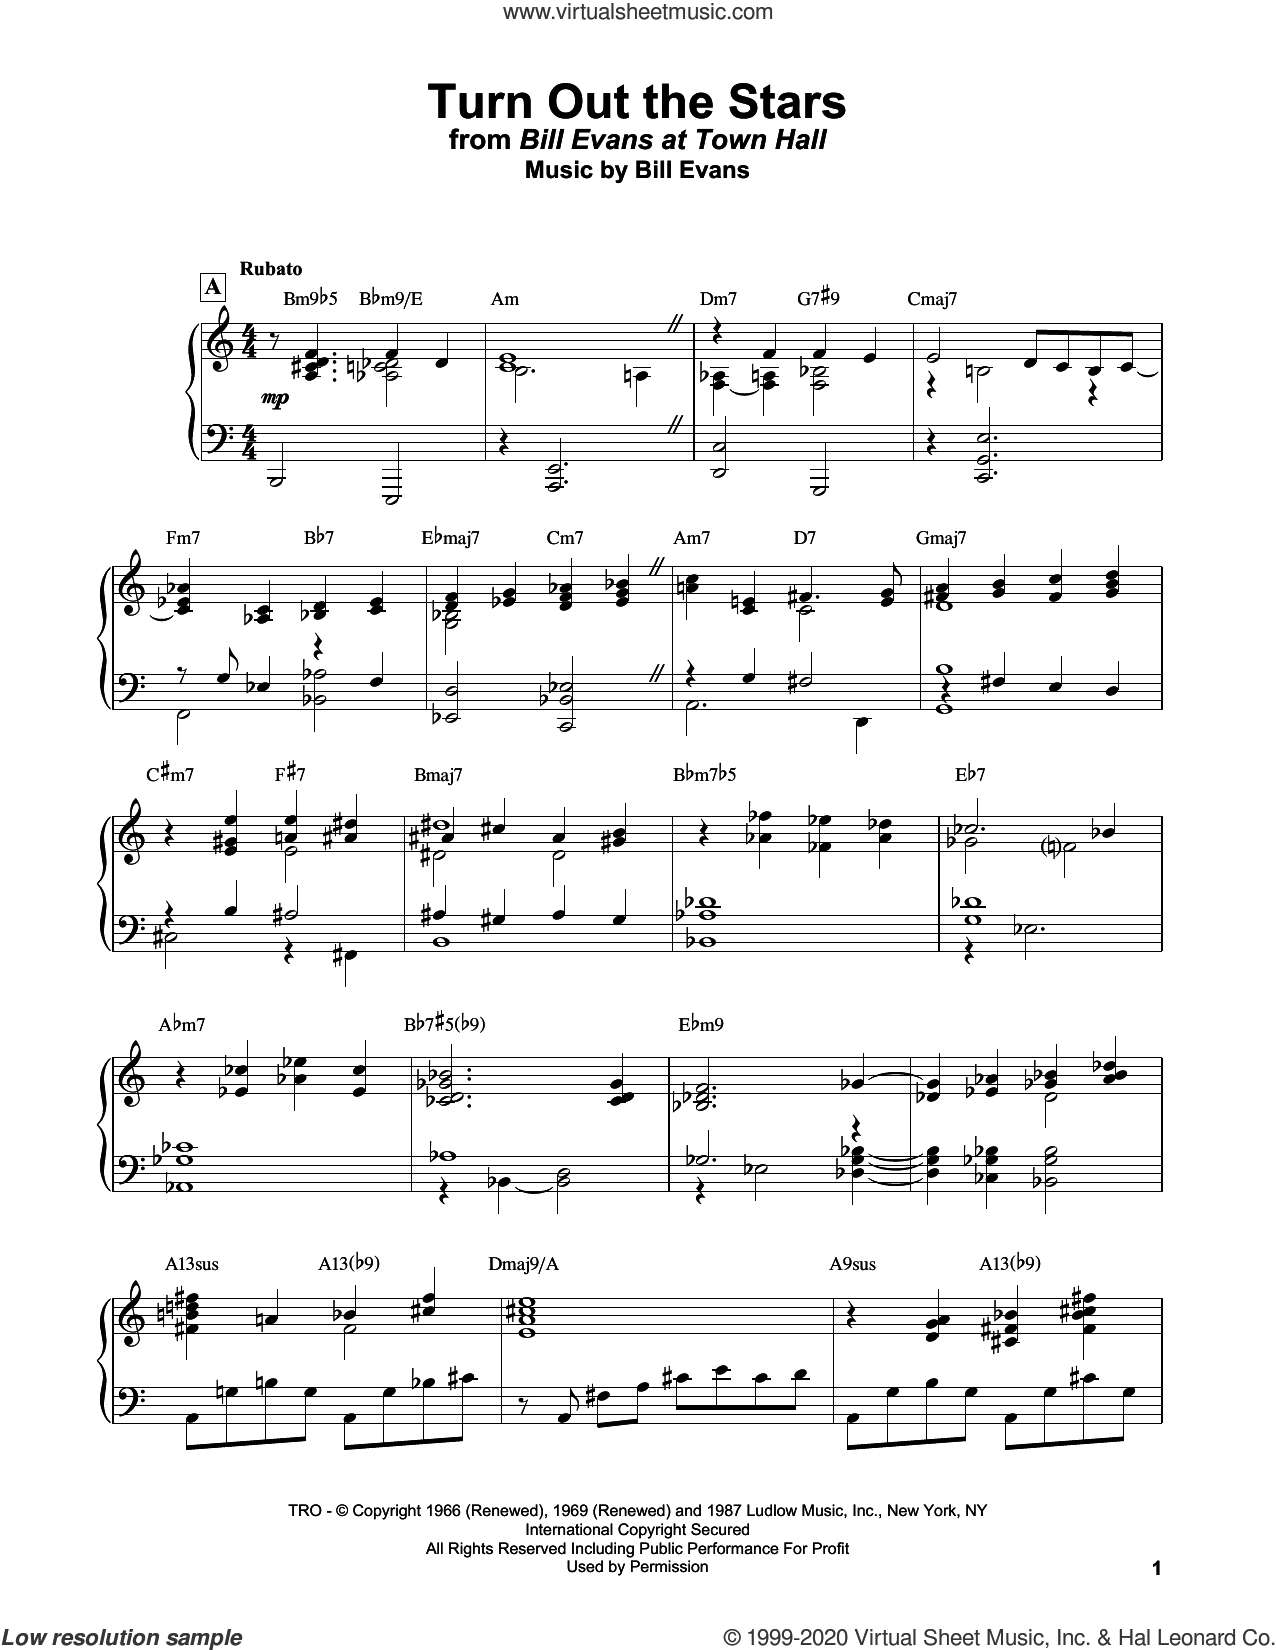 Turn Out The Stars sheet music for piano solo by Bill Evans, intermediate skill level